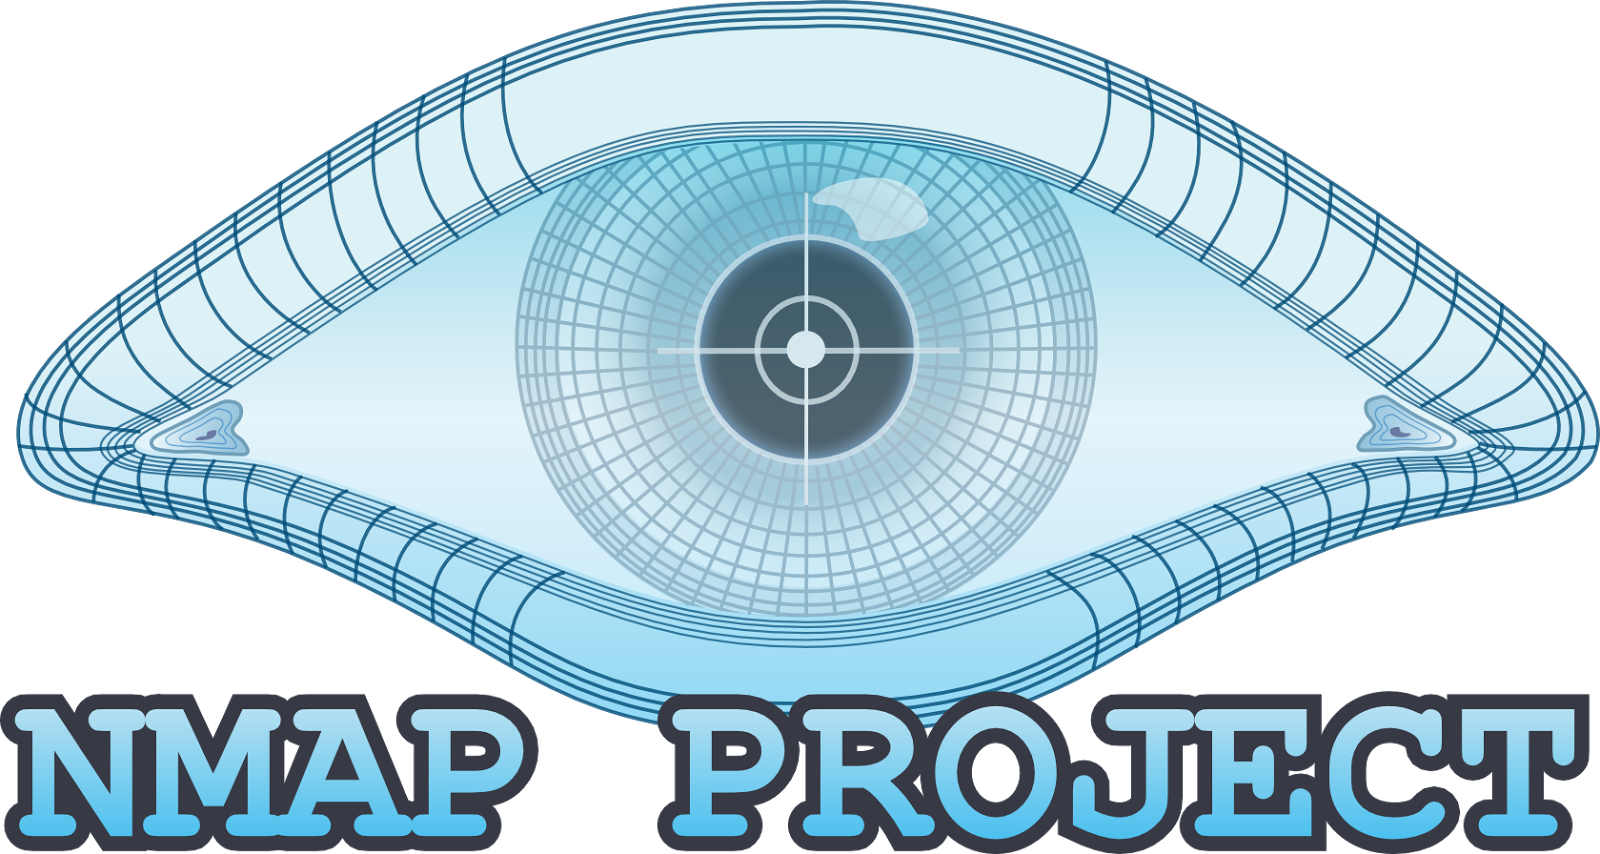 ZeNmap - The classic way of Nmap 2